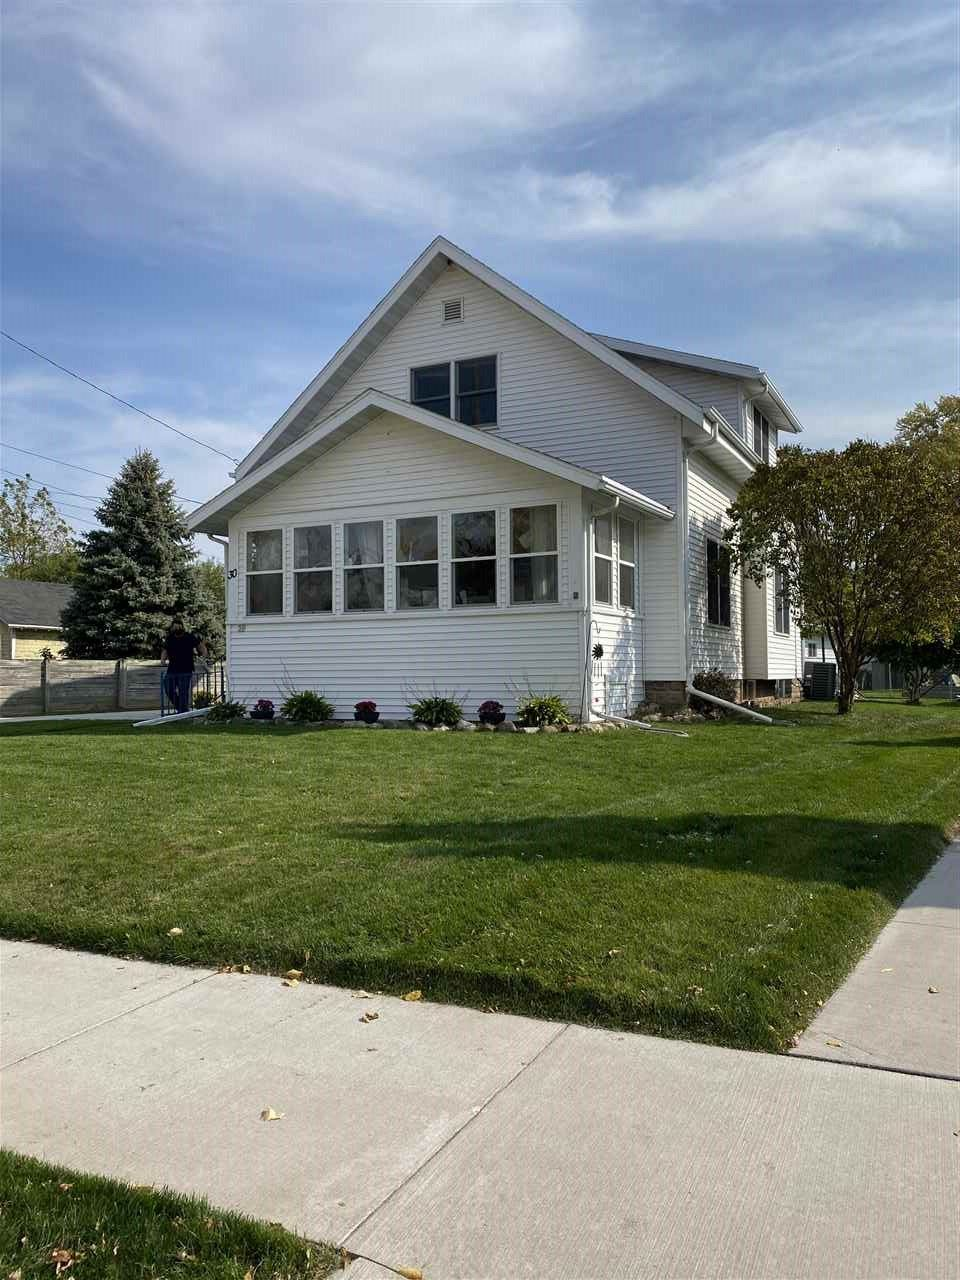 30 EVELINE Street, Oshkosh, WI 54901 - MLS#: 50231329